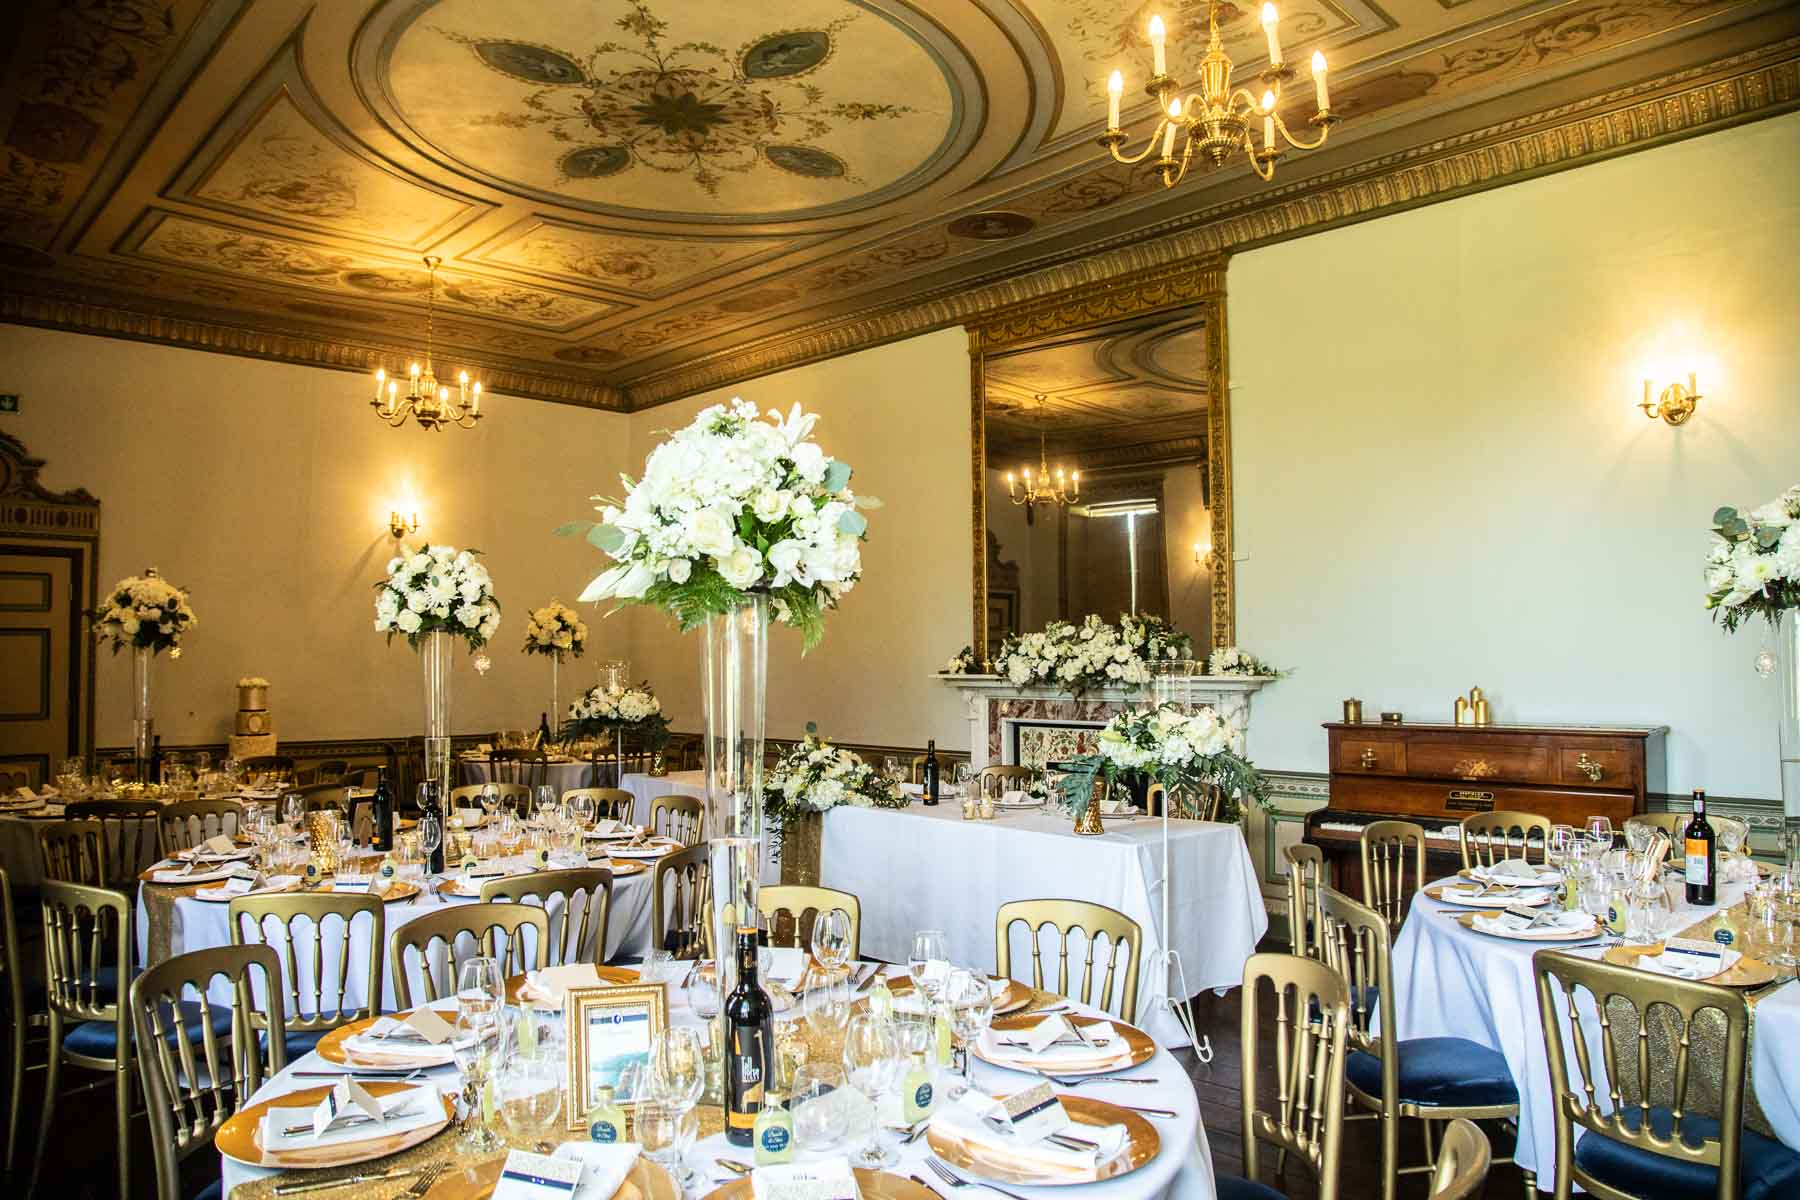 Beautiful wedding ideas for Weddings at Delapre Abbey